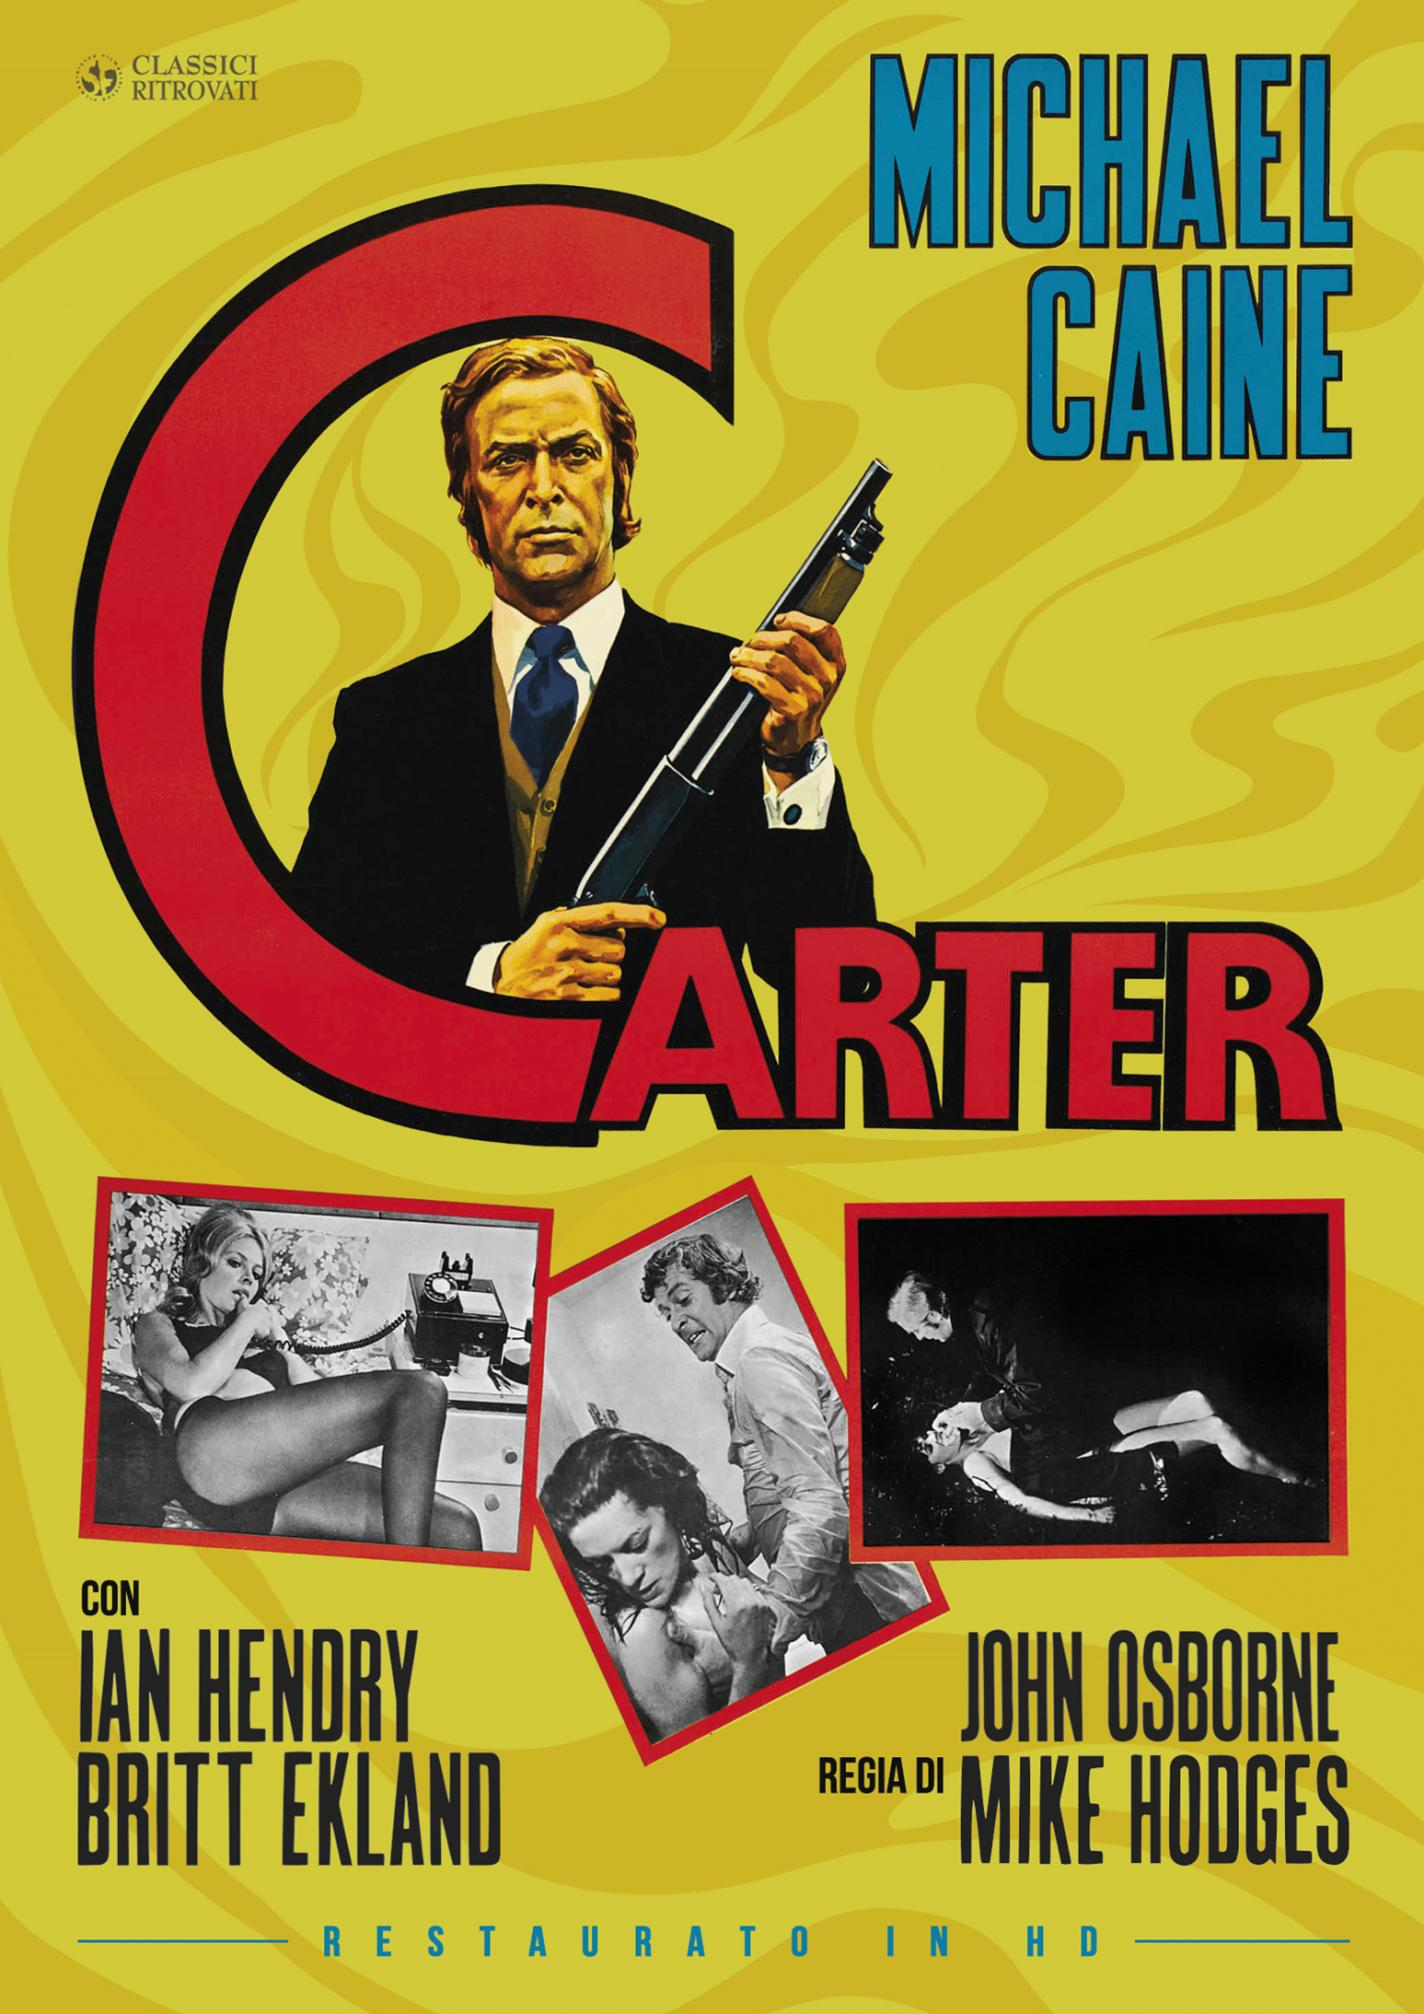 CARTER (RESTAURATO IN HD) (DVD)